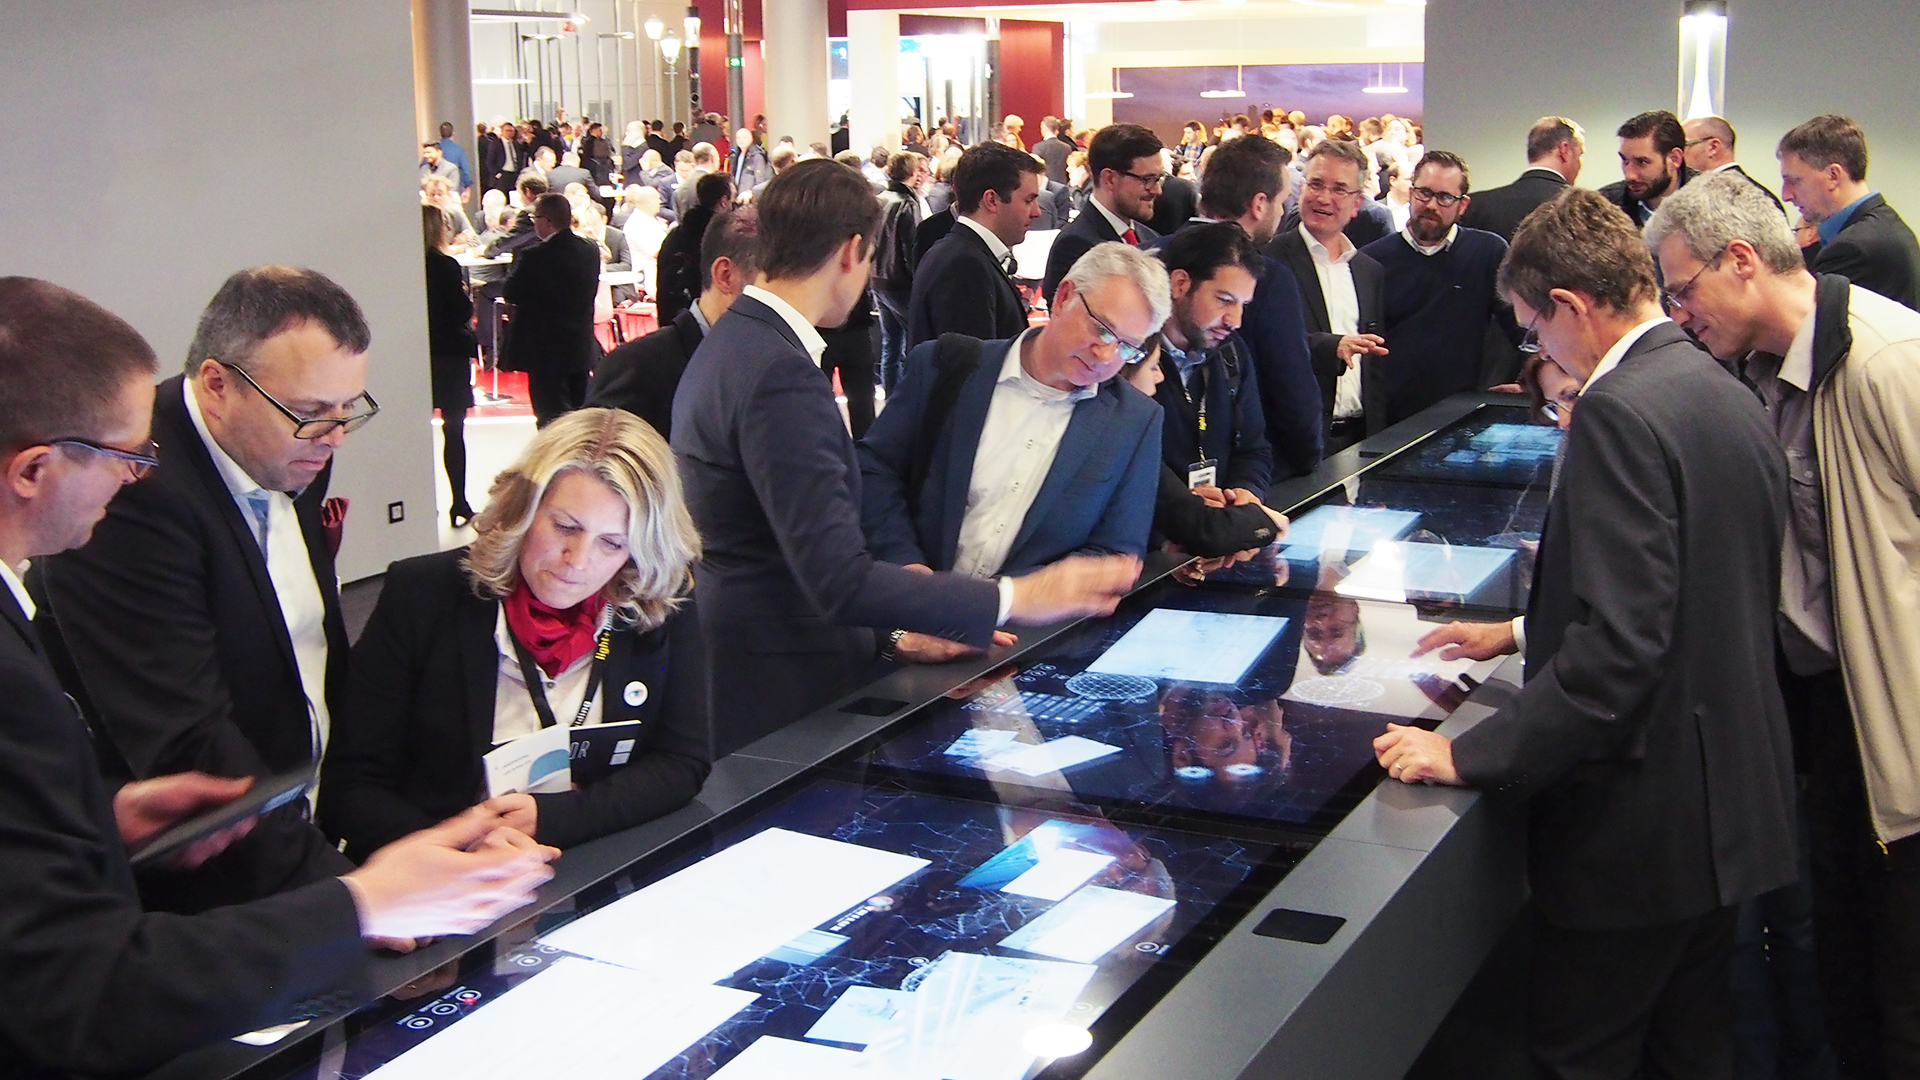 trilux unity trade fair application multitouch table with several users